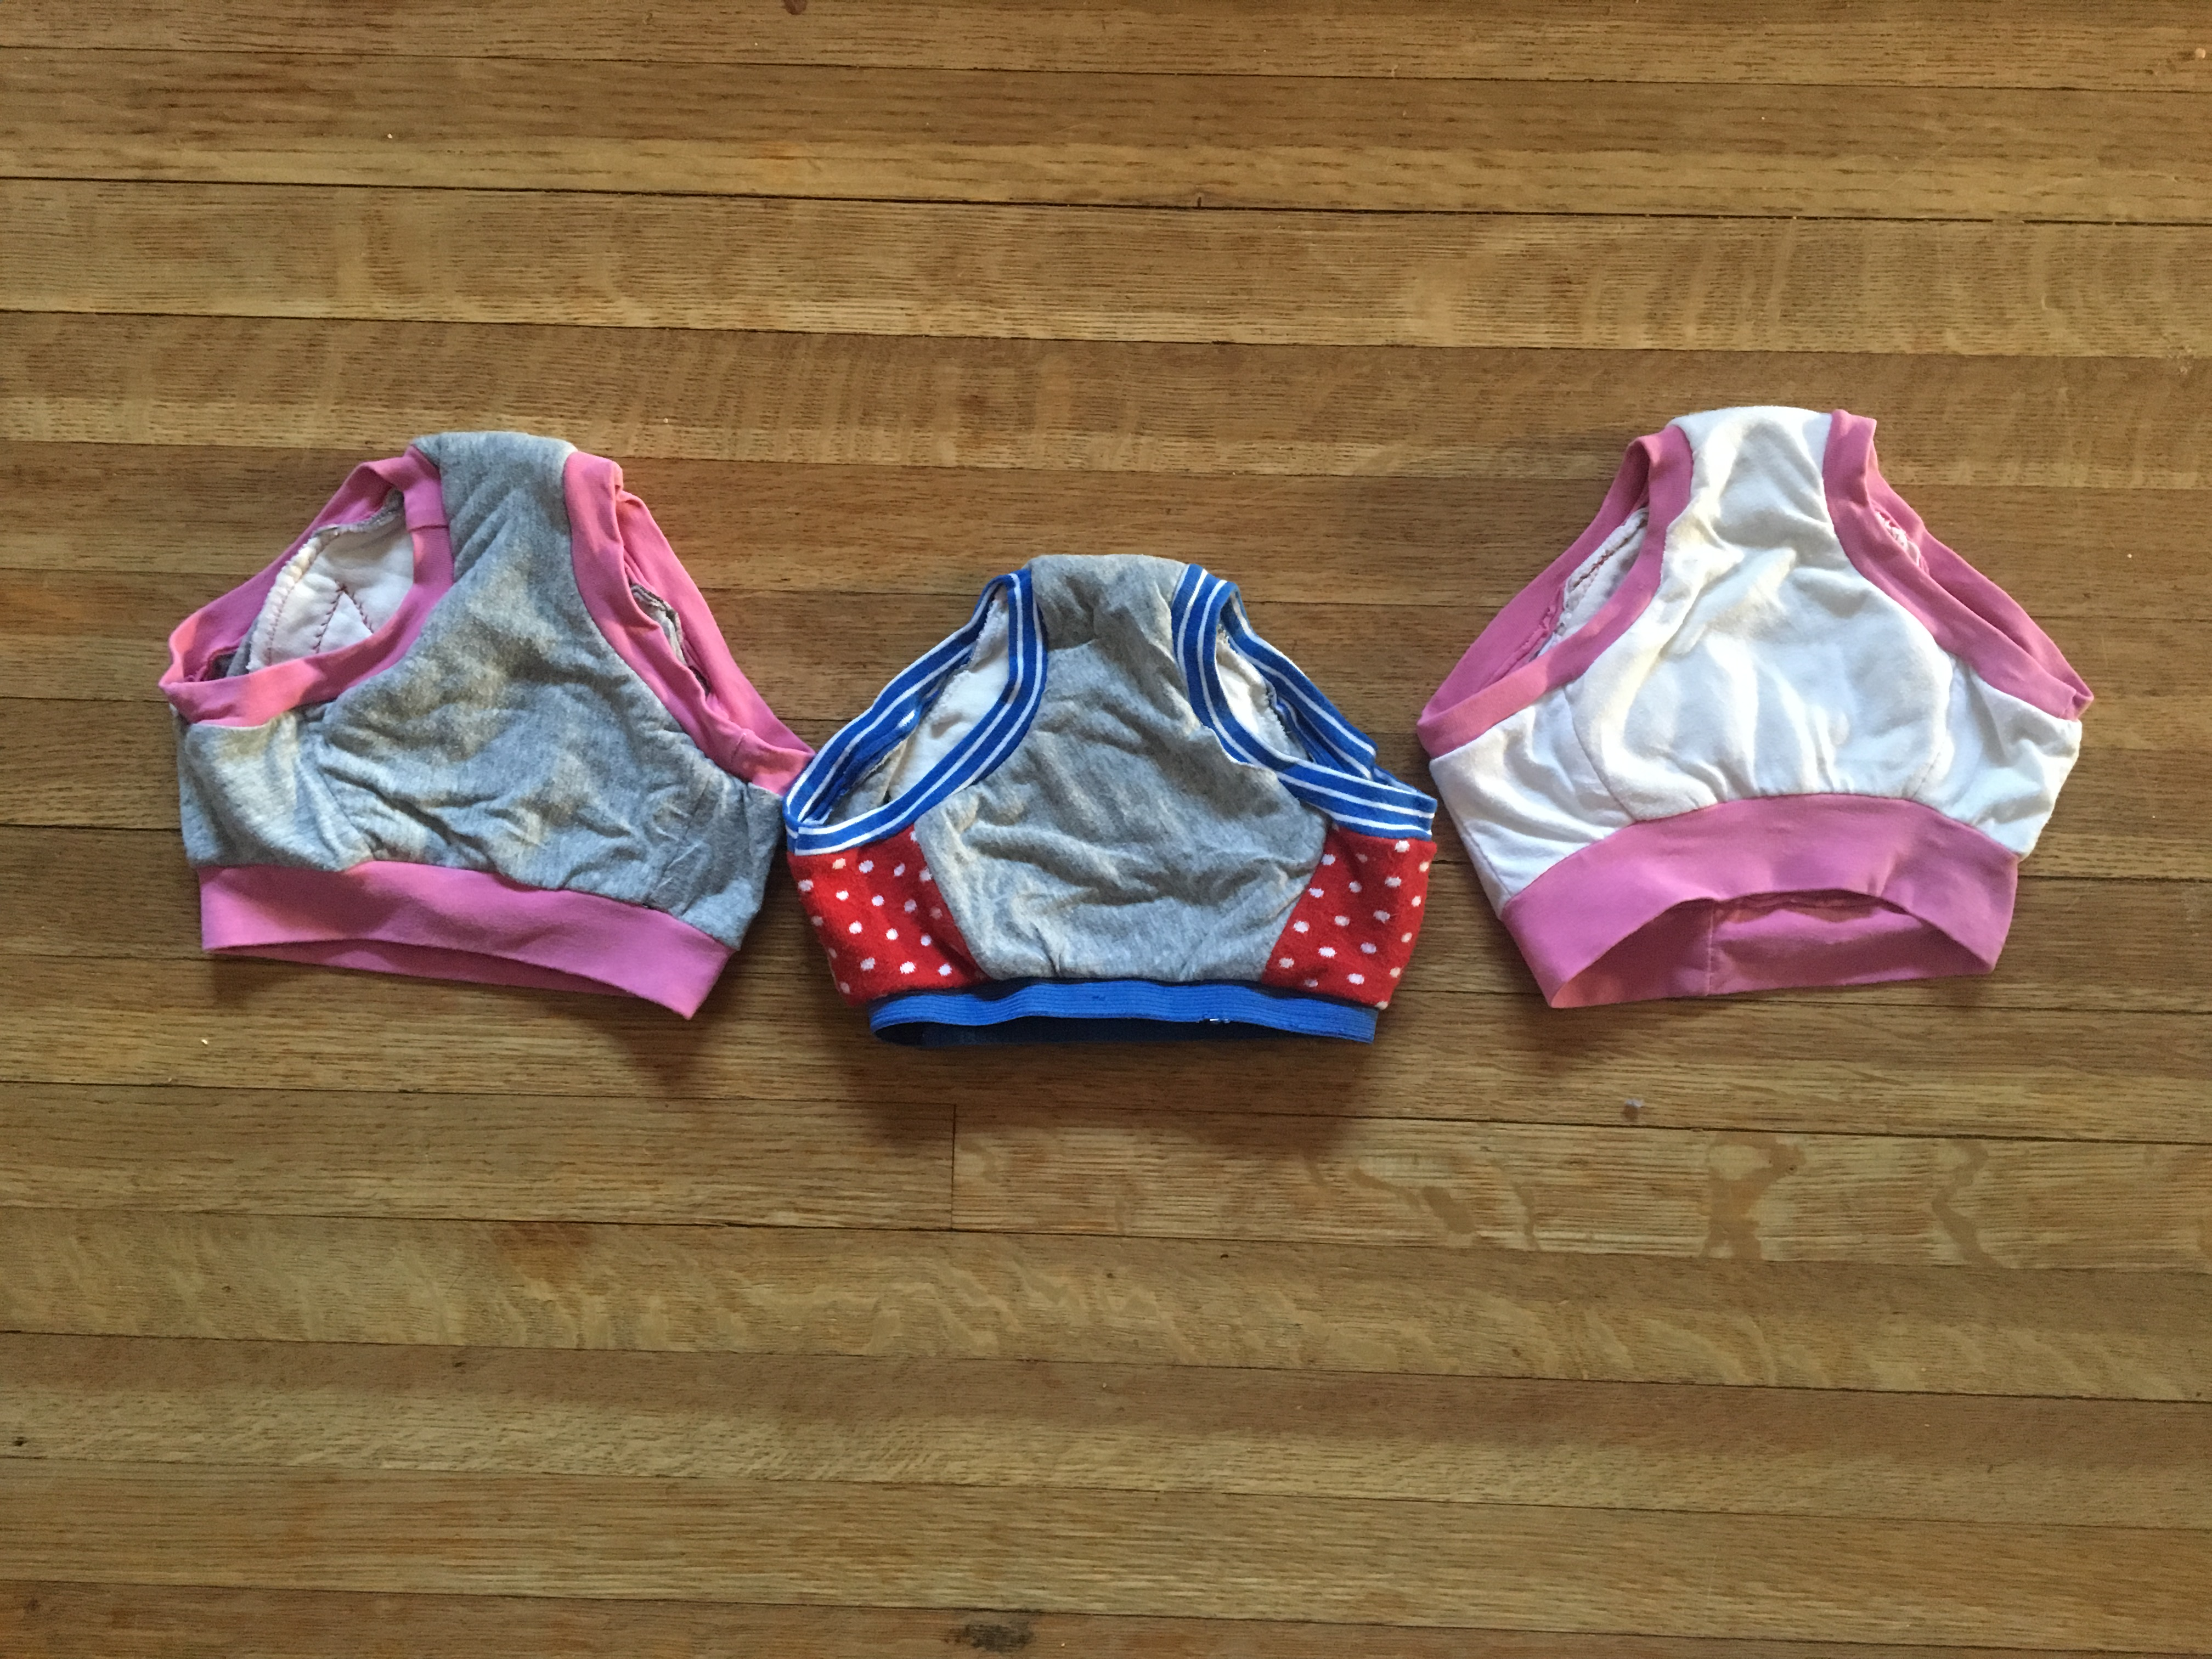 three pairs of toddler underwear, fronts : white with pink bands, grey with blue elastic/bands and red polka dot sides, grey with pink bands